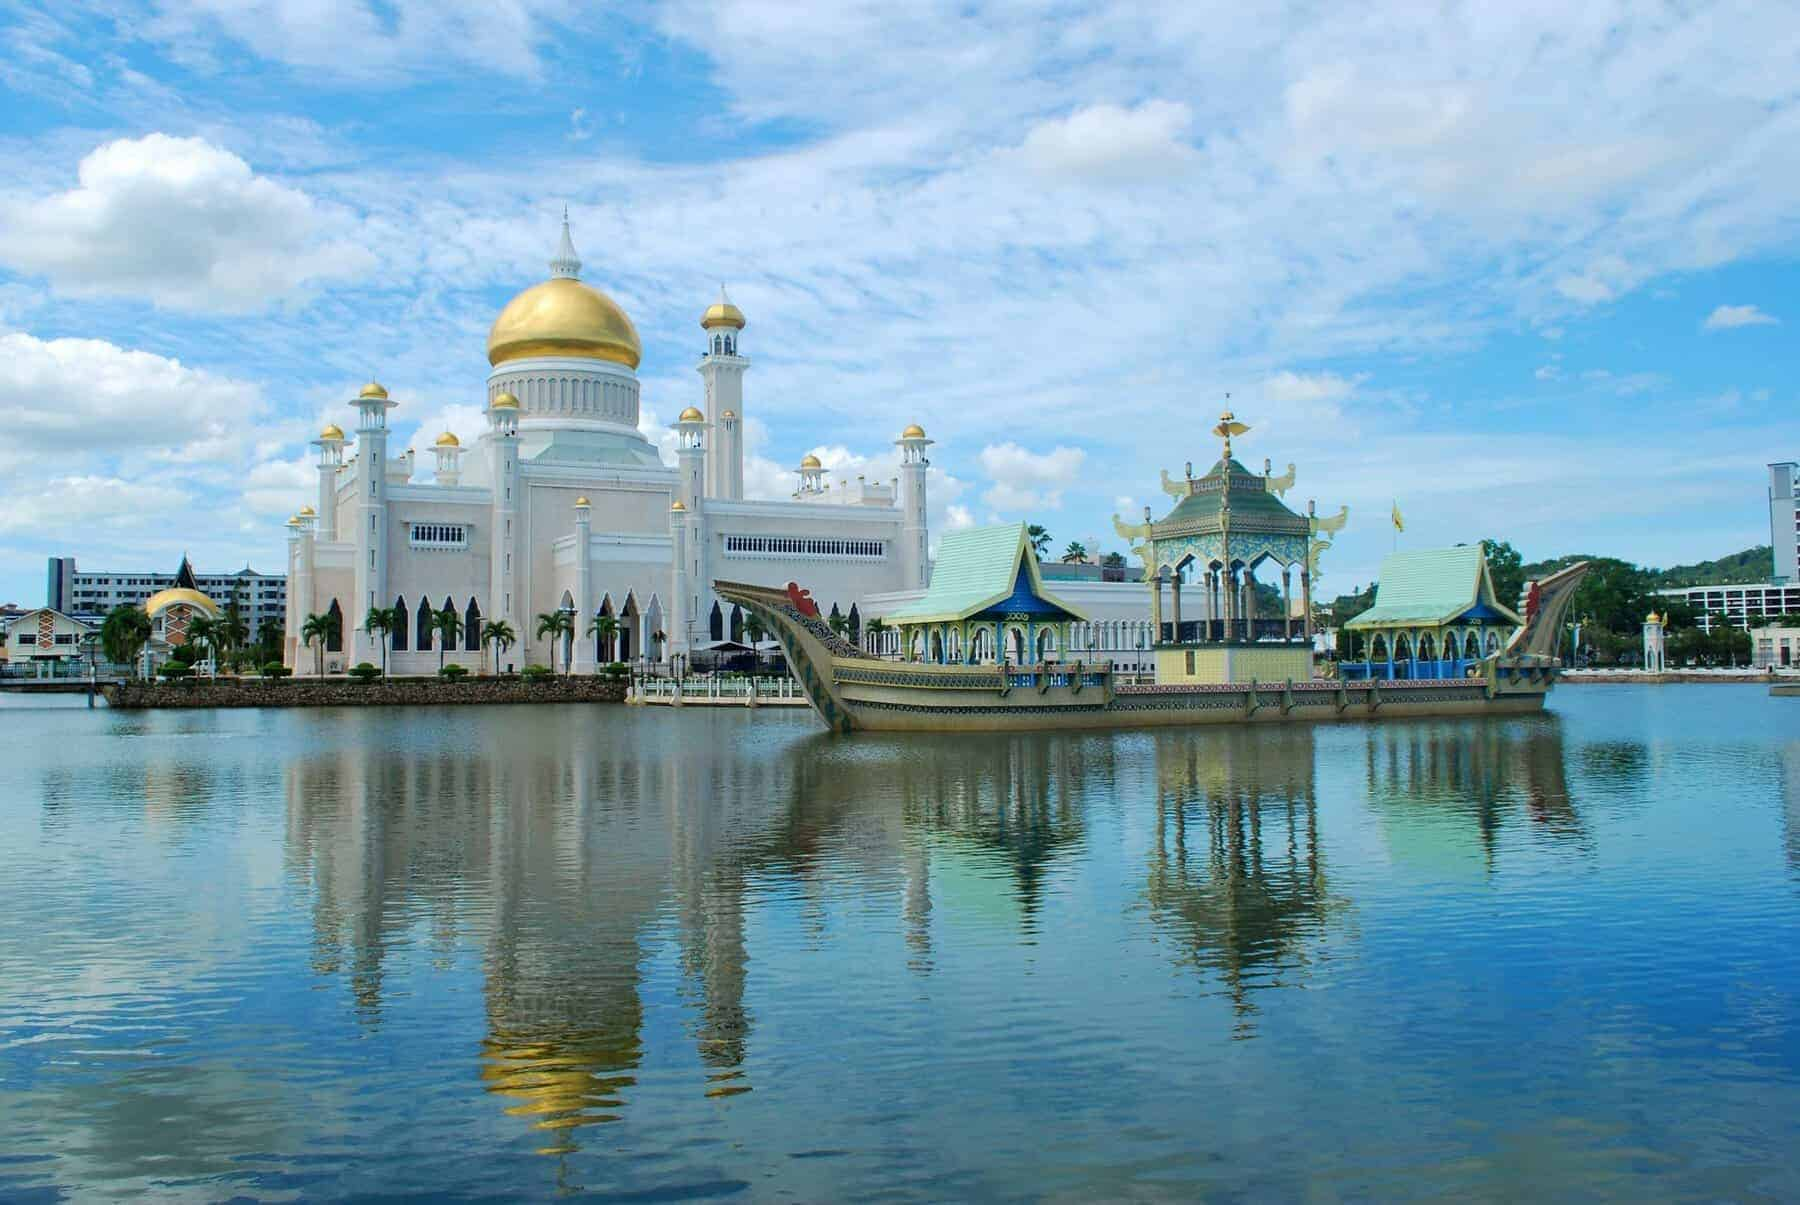 The white golden-domed Sultan Omar Ali Saifuddien Mosque in Bandar Seri Begawan, the capital of Brunei, on the island of Borneo.